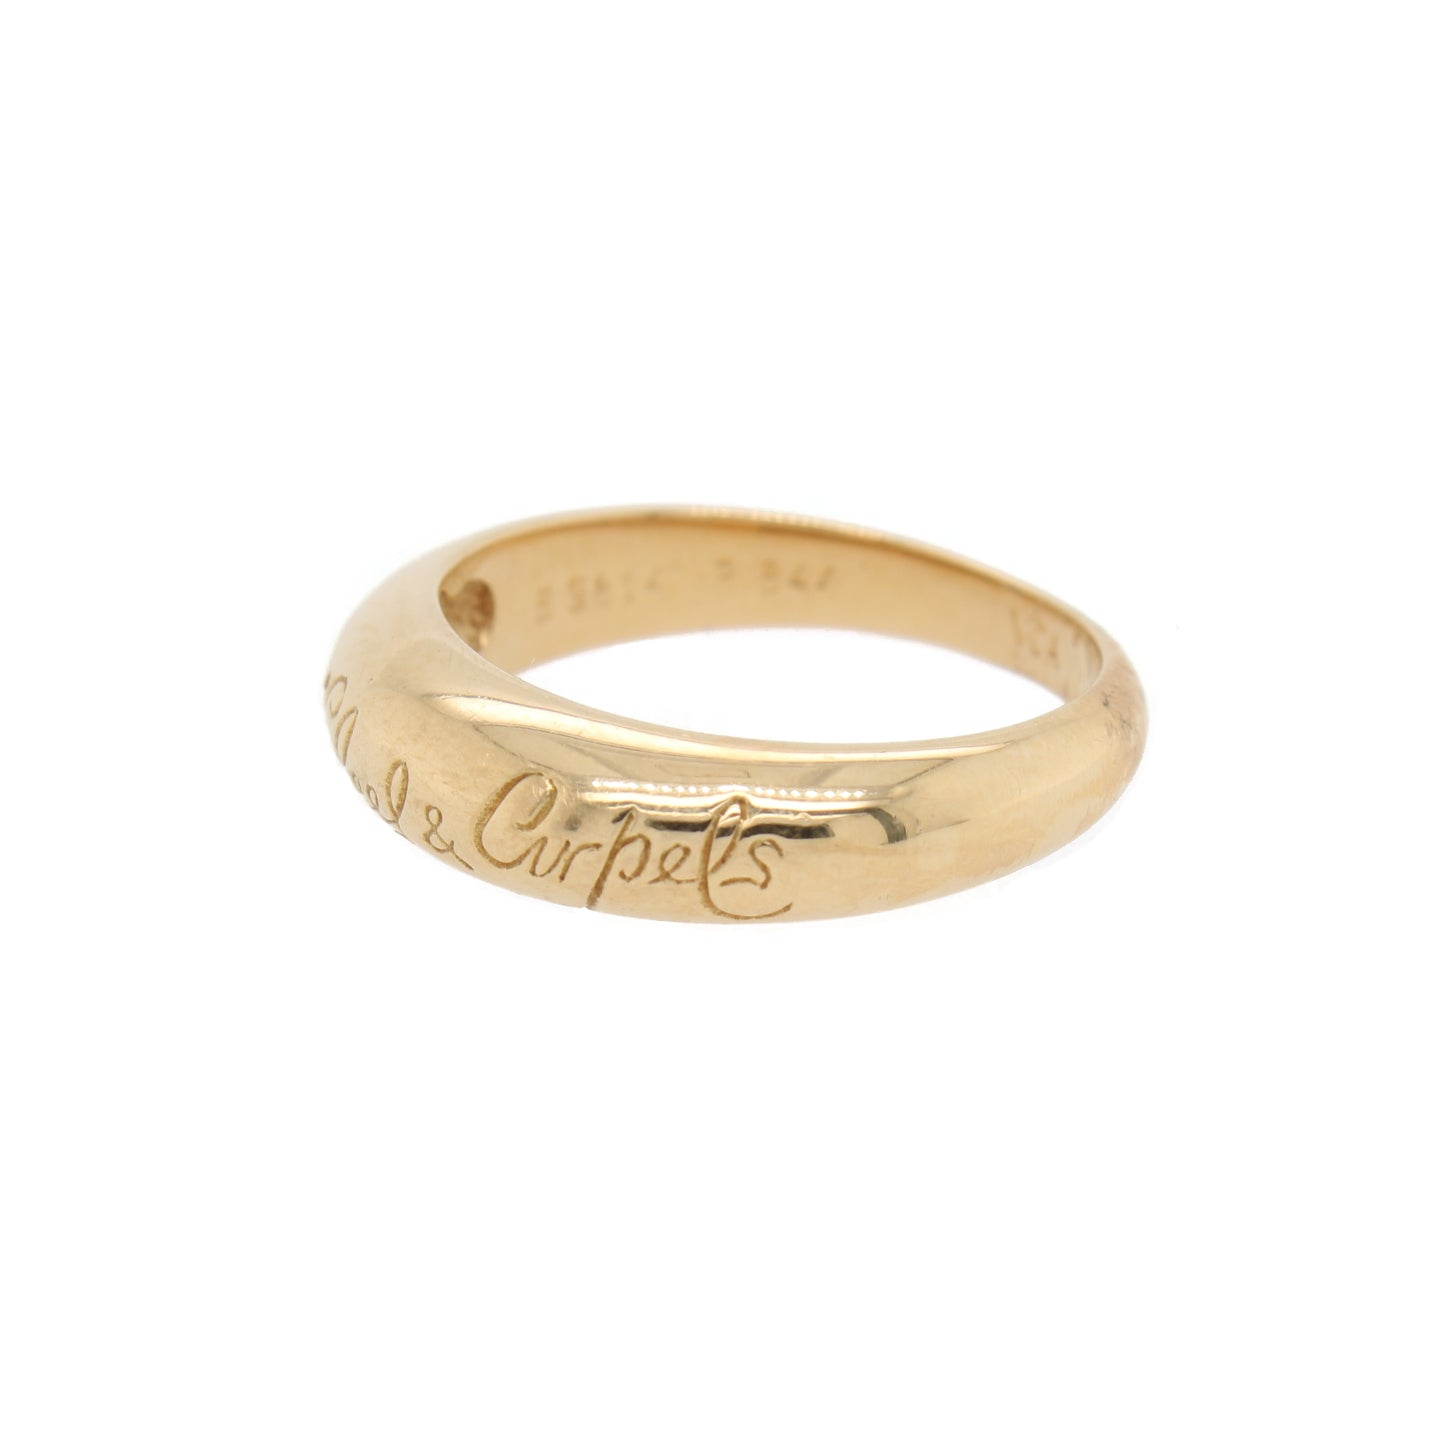 Van Cleef & Arpels Engraved Gold Band